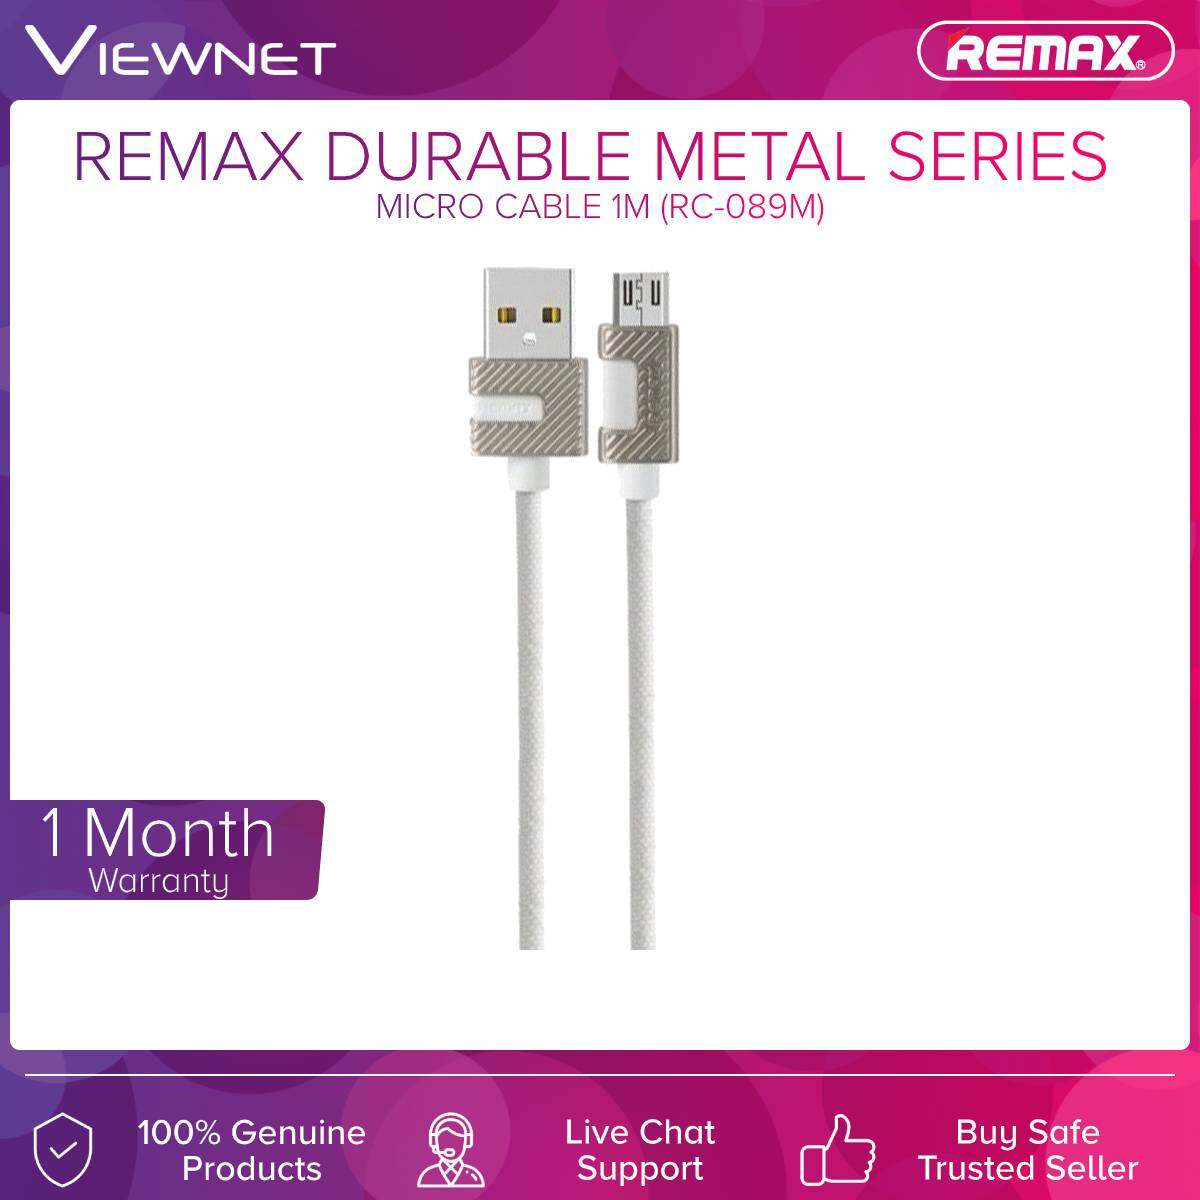 Remax (RC-089M) Durable Metal Series Micro Cable